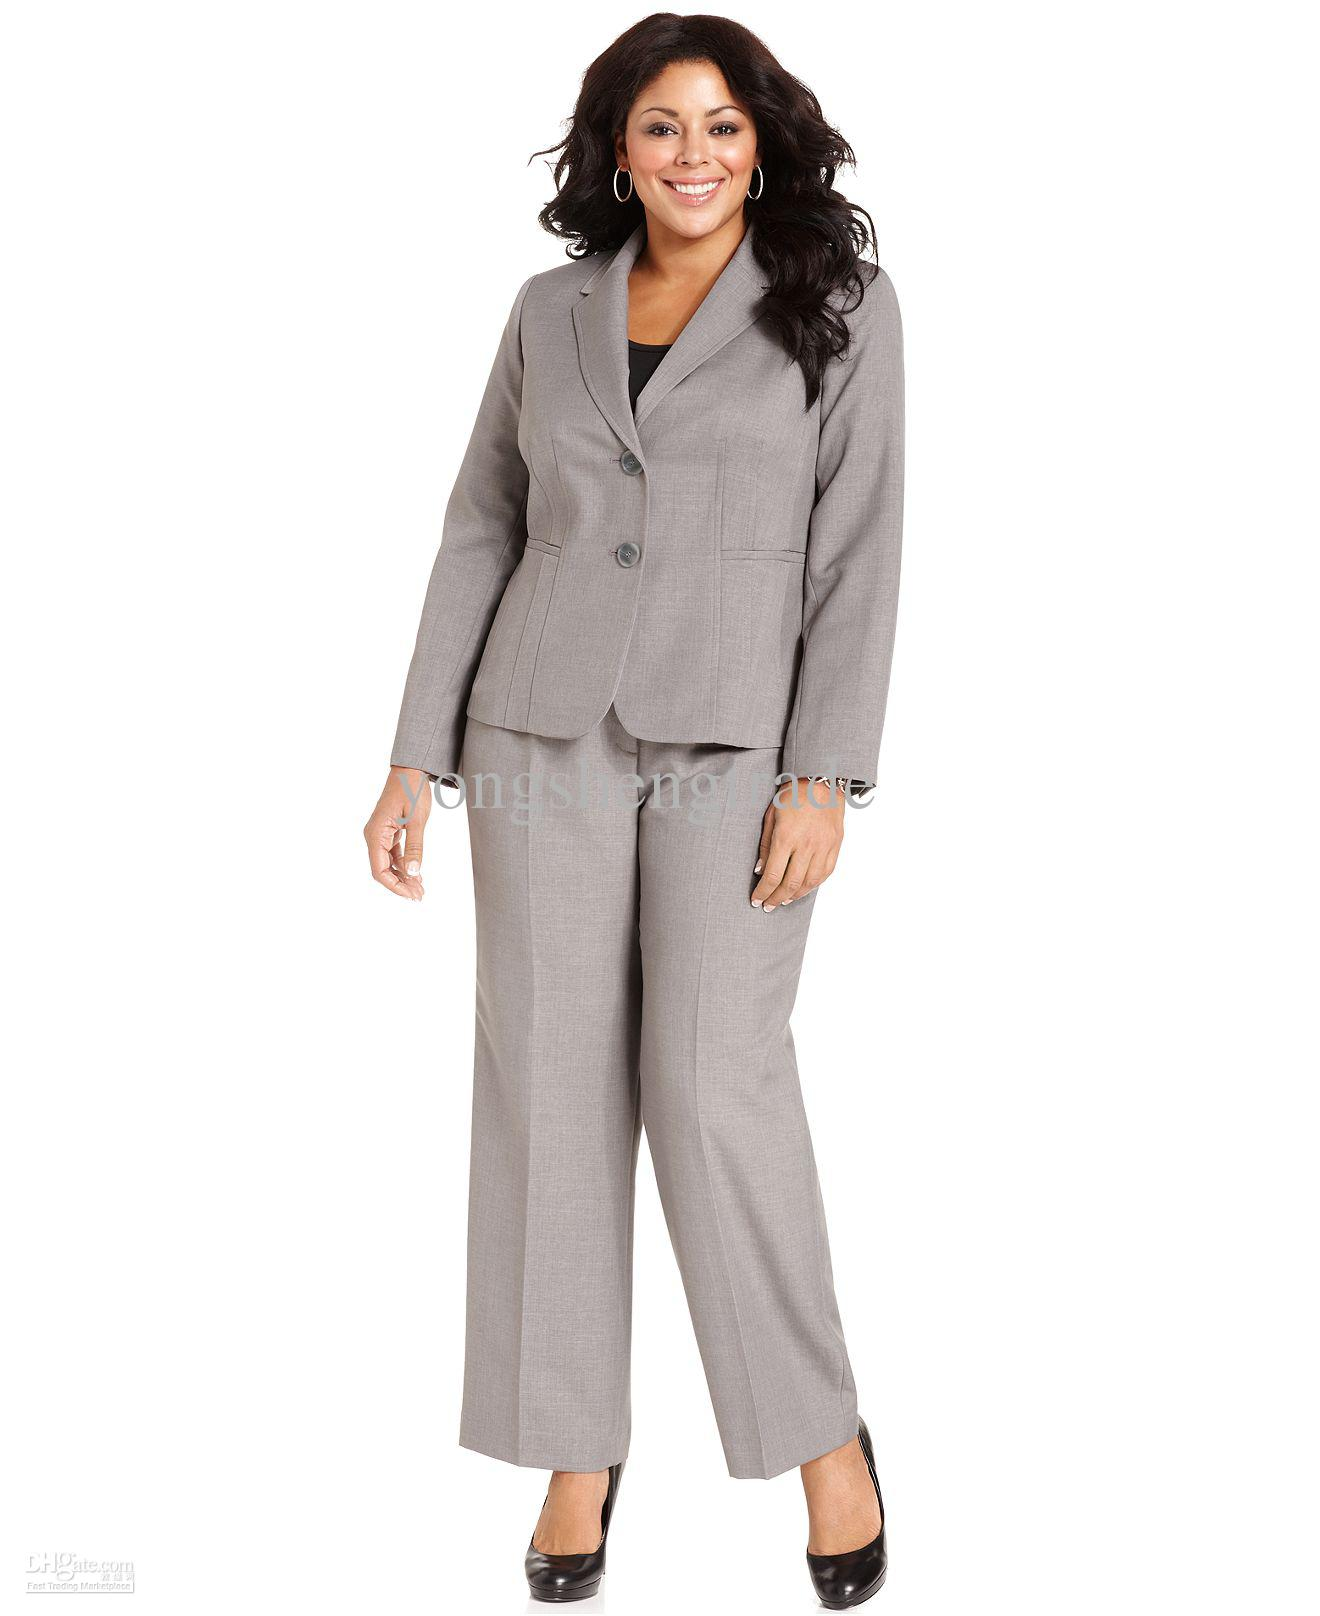 Plus Size Work Clothes Show off taste, smarts and beauty in fierce, flattering plus size work clothes. Display flawless style in the boardroom, cool confidence in .